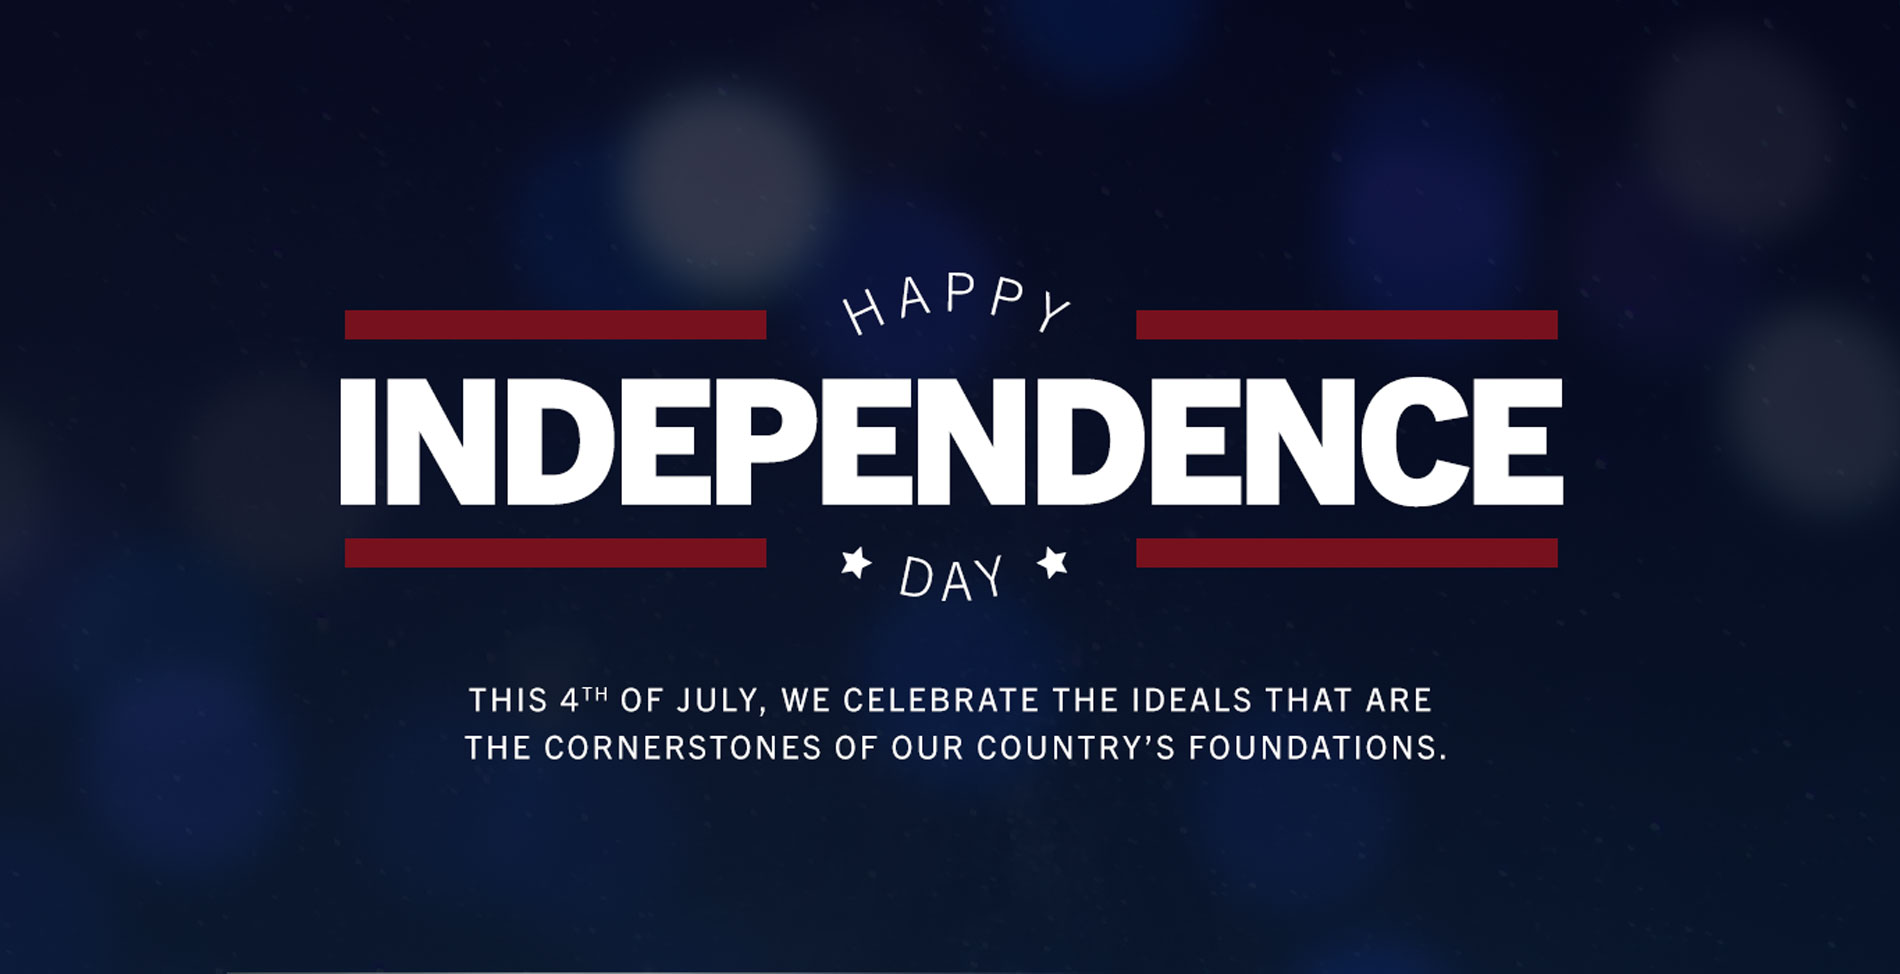 Happy Independence Day. This Fourth of July, we celebrate the ideals that are the cornerstones of our country's foundations.